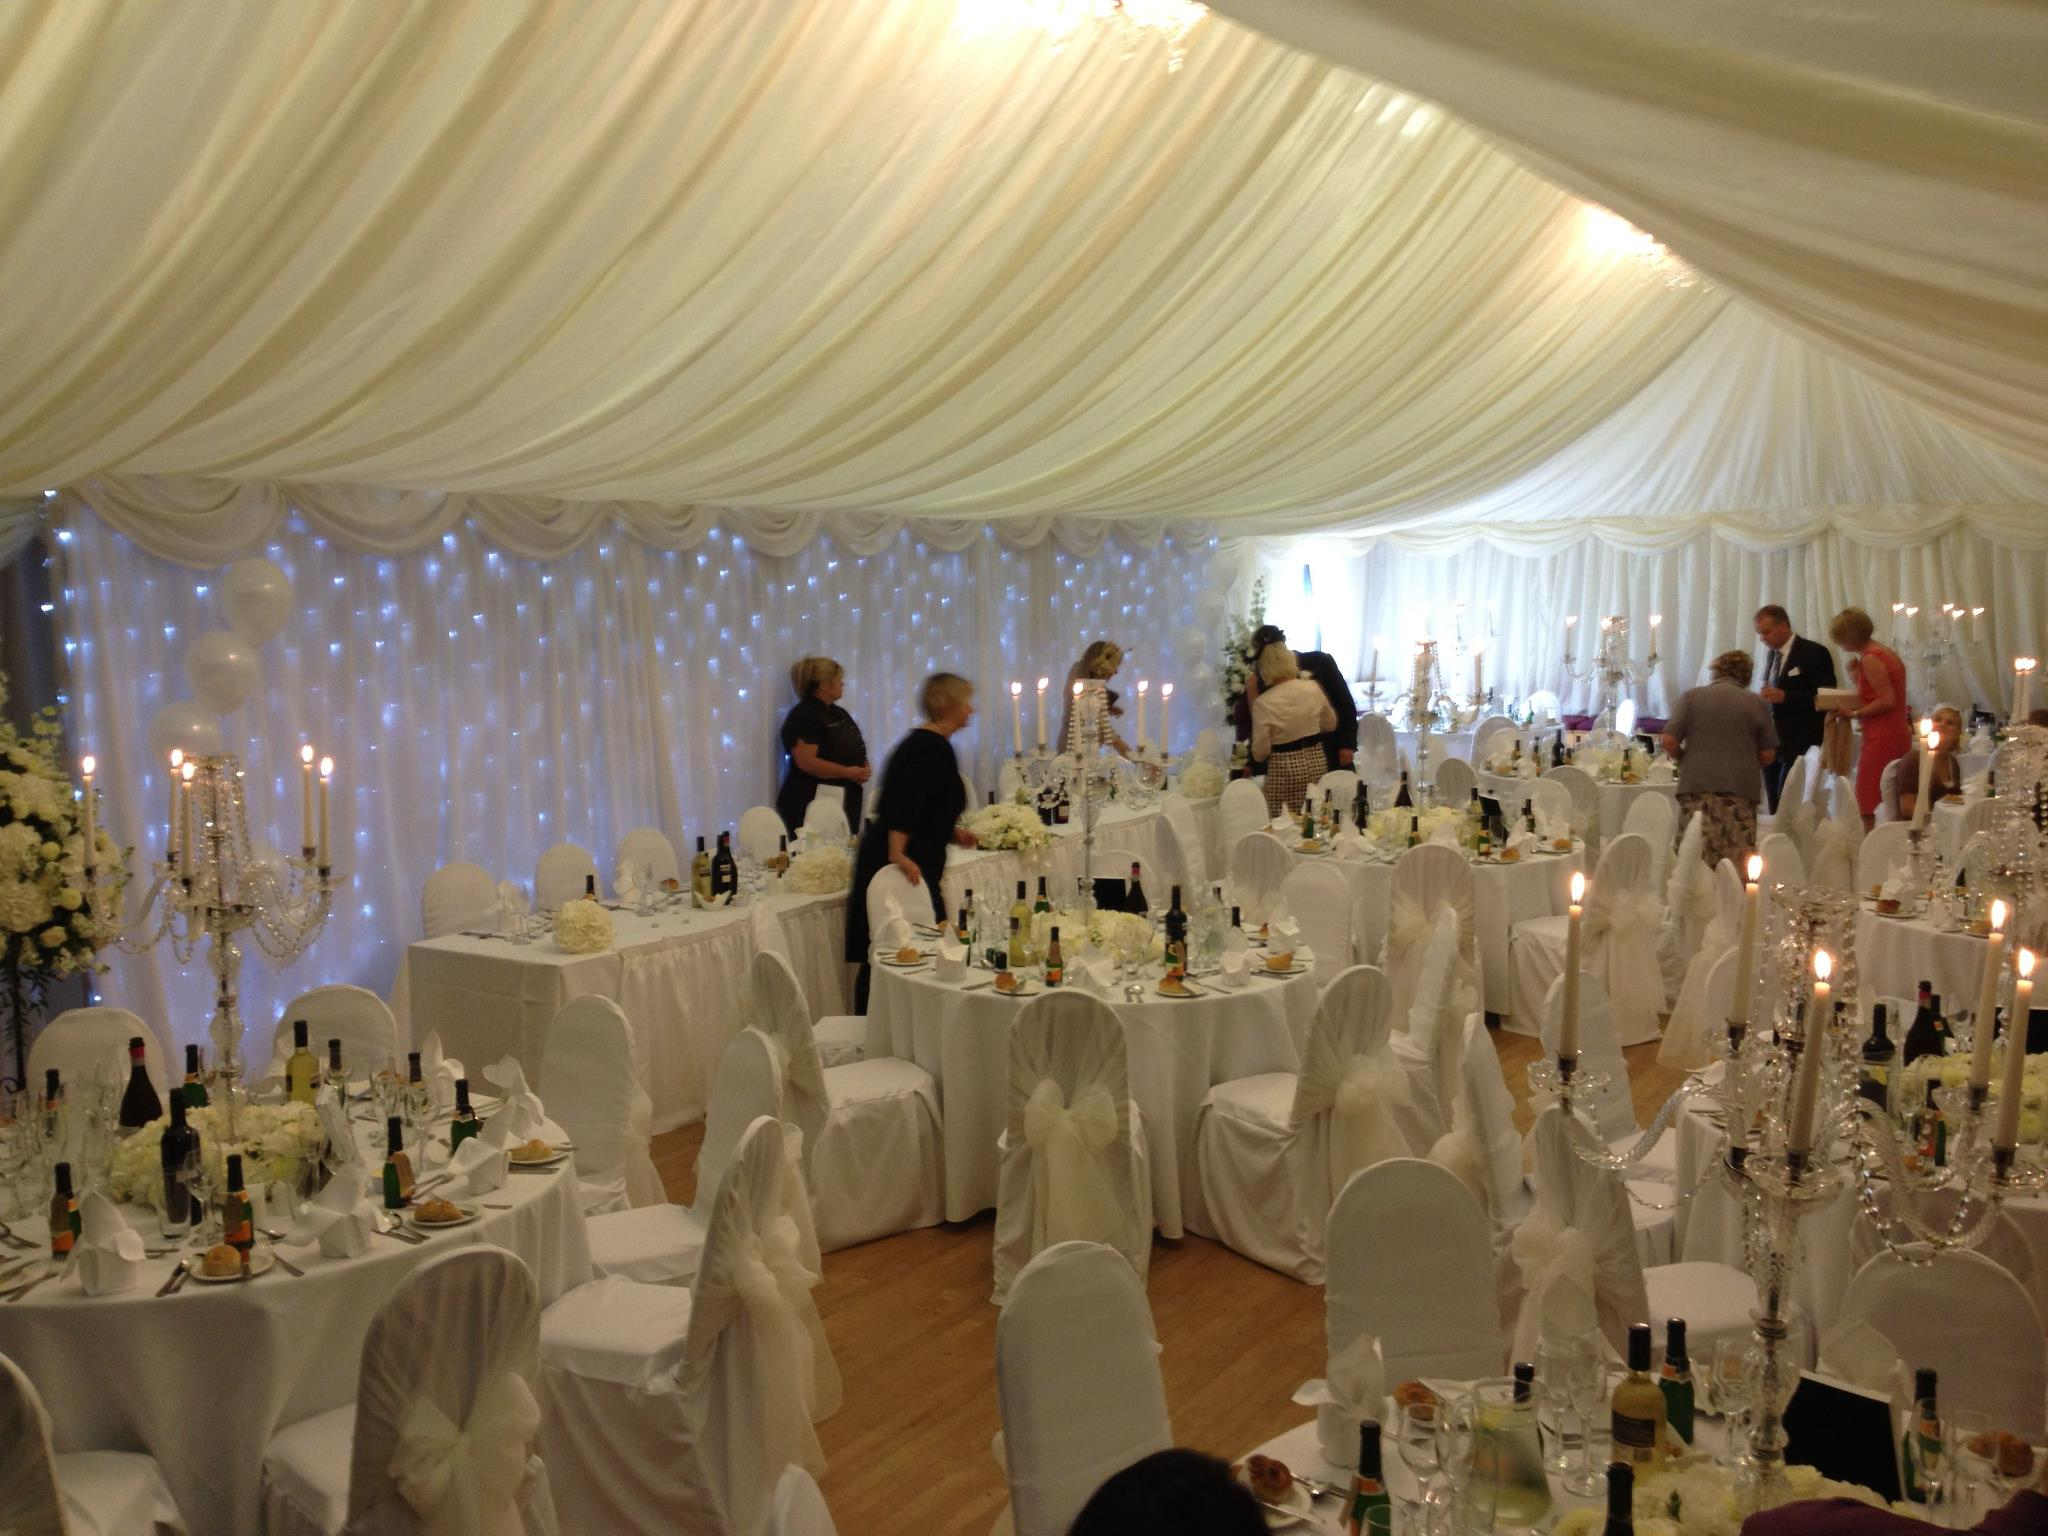 Magical chesterfield wedding venues decorating the room for Pictures of wedding venues decorated